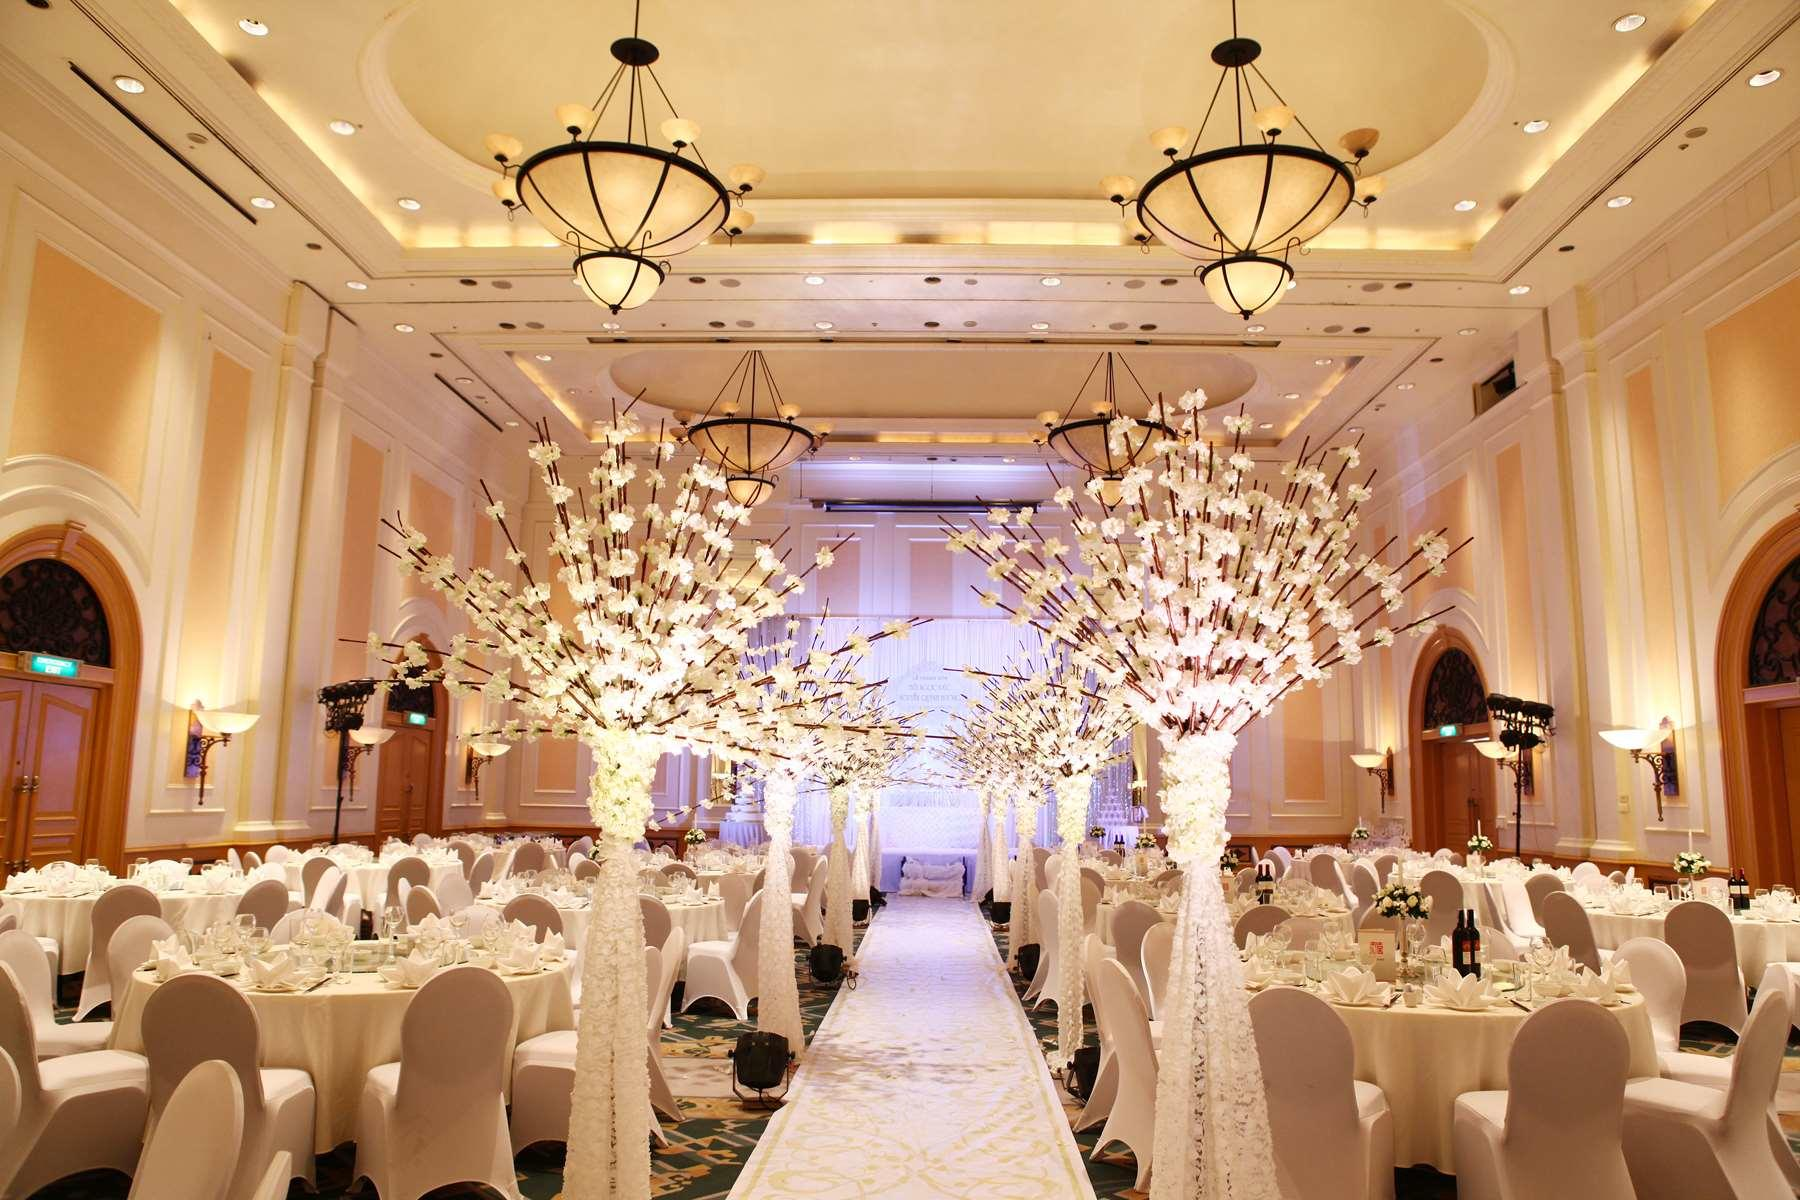 Wedding Venues Hanoi | Wedding Hotels Hanoi | Hanoi Daewoo Hotel